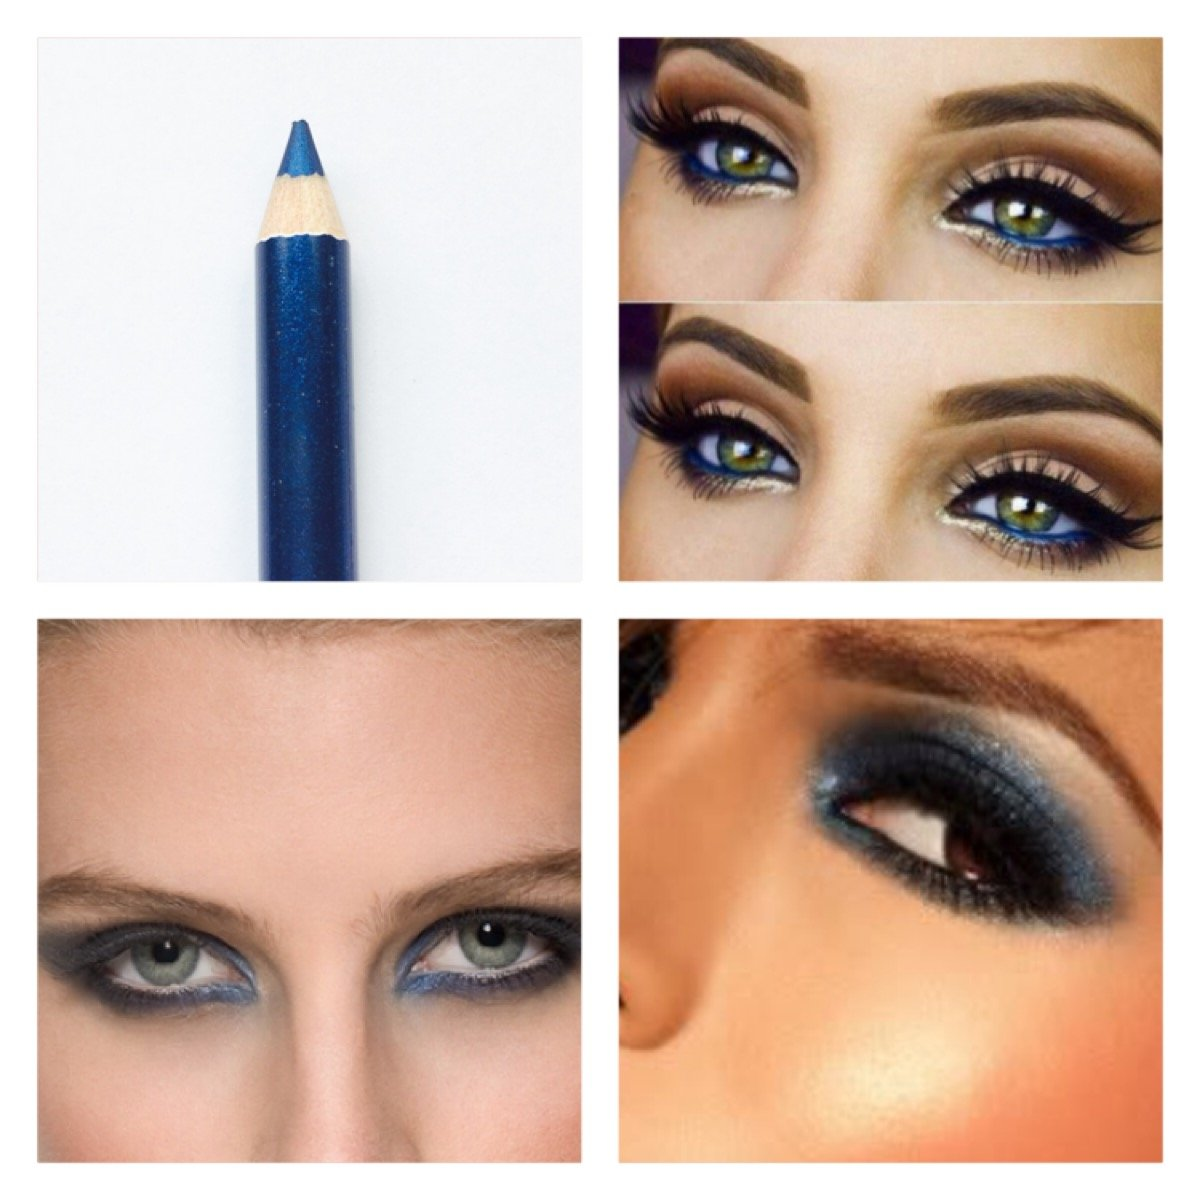 Blue Royal Lip Eye Pencil Makeup Liner Smudge Smokey Spring Trend 1pc Just Crystals Boutique